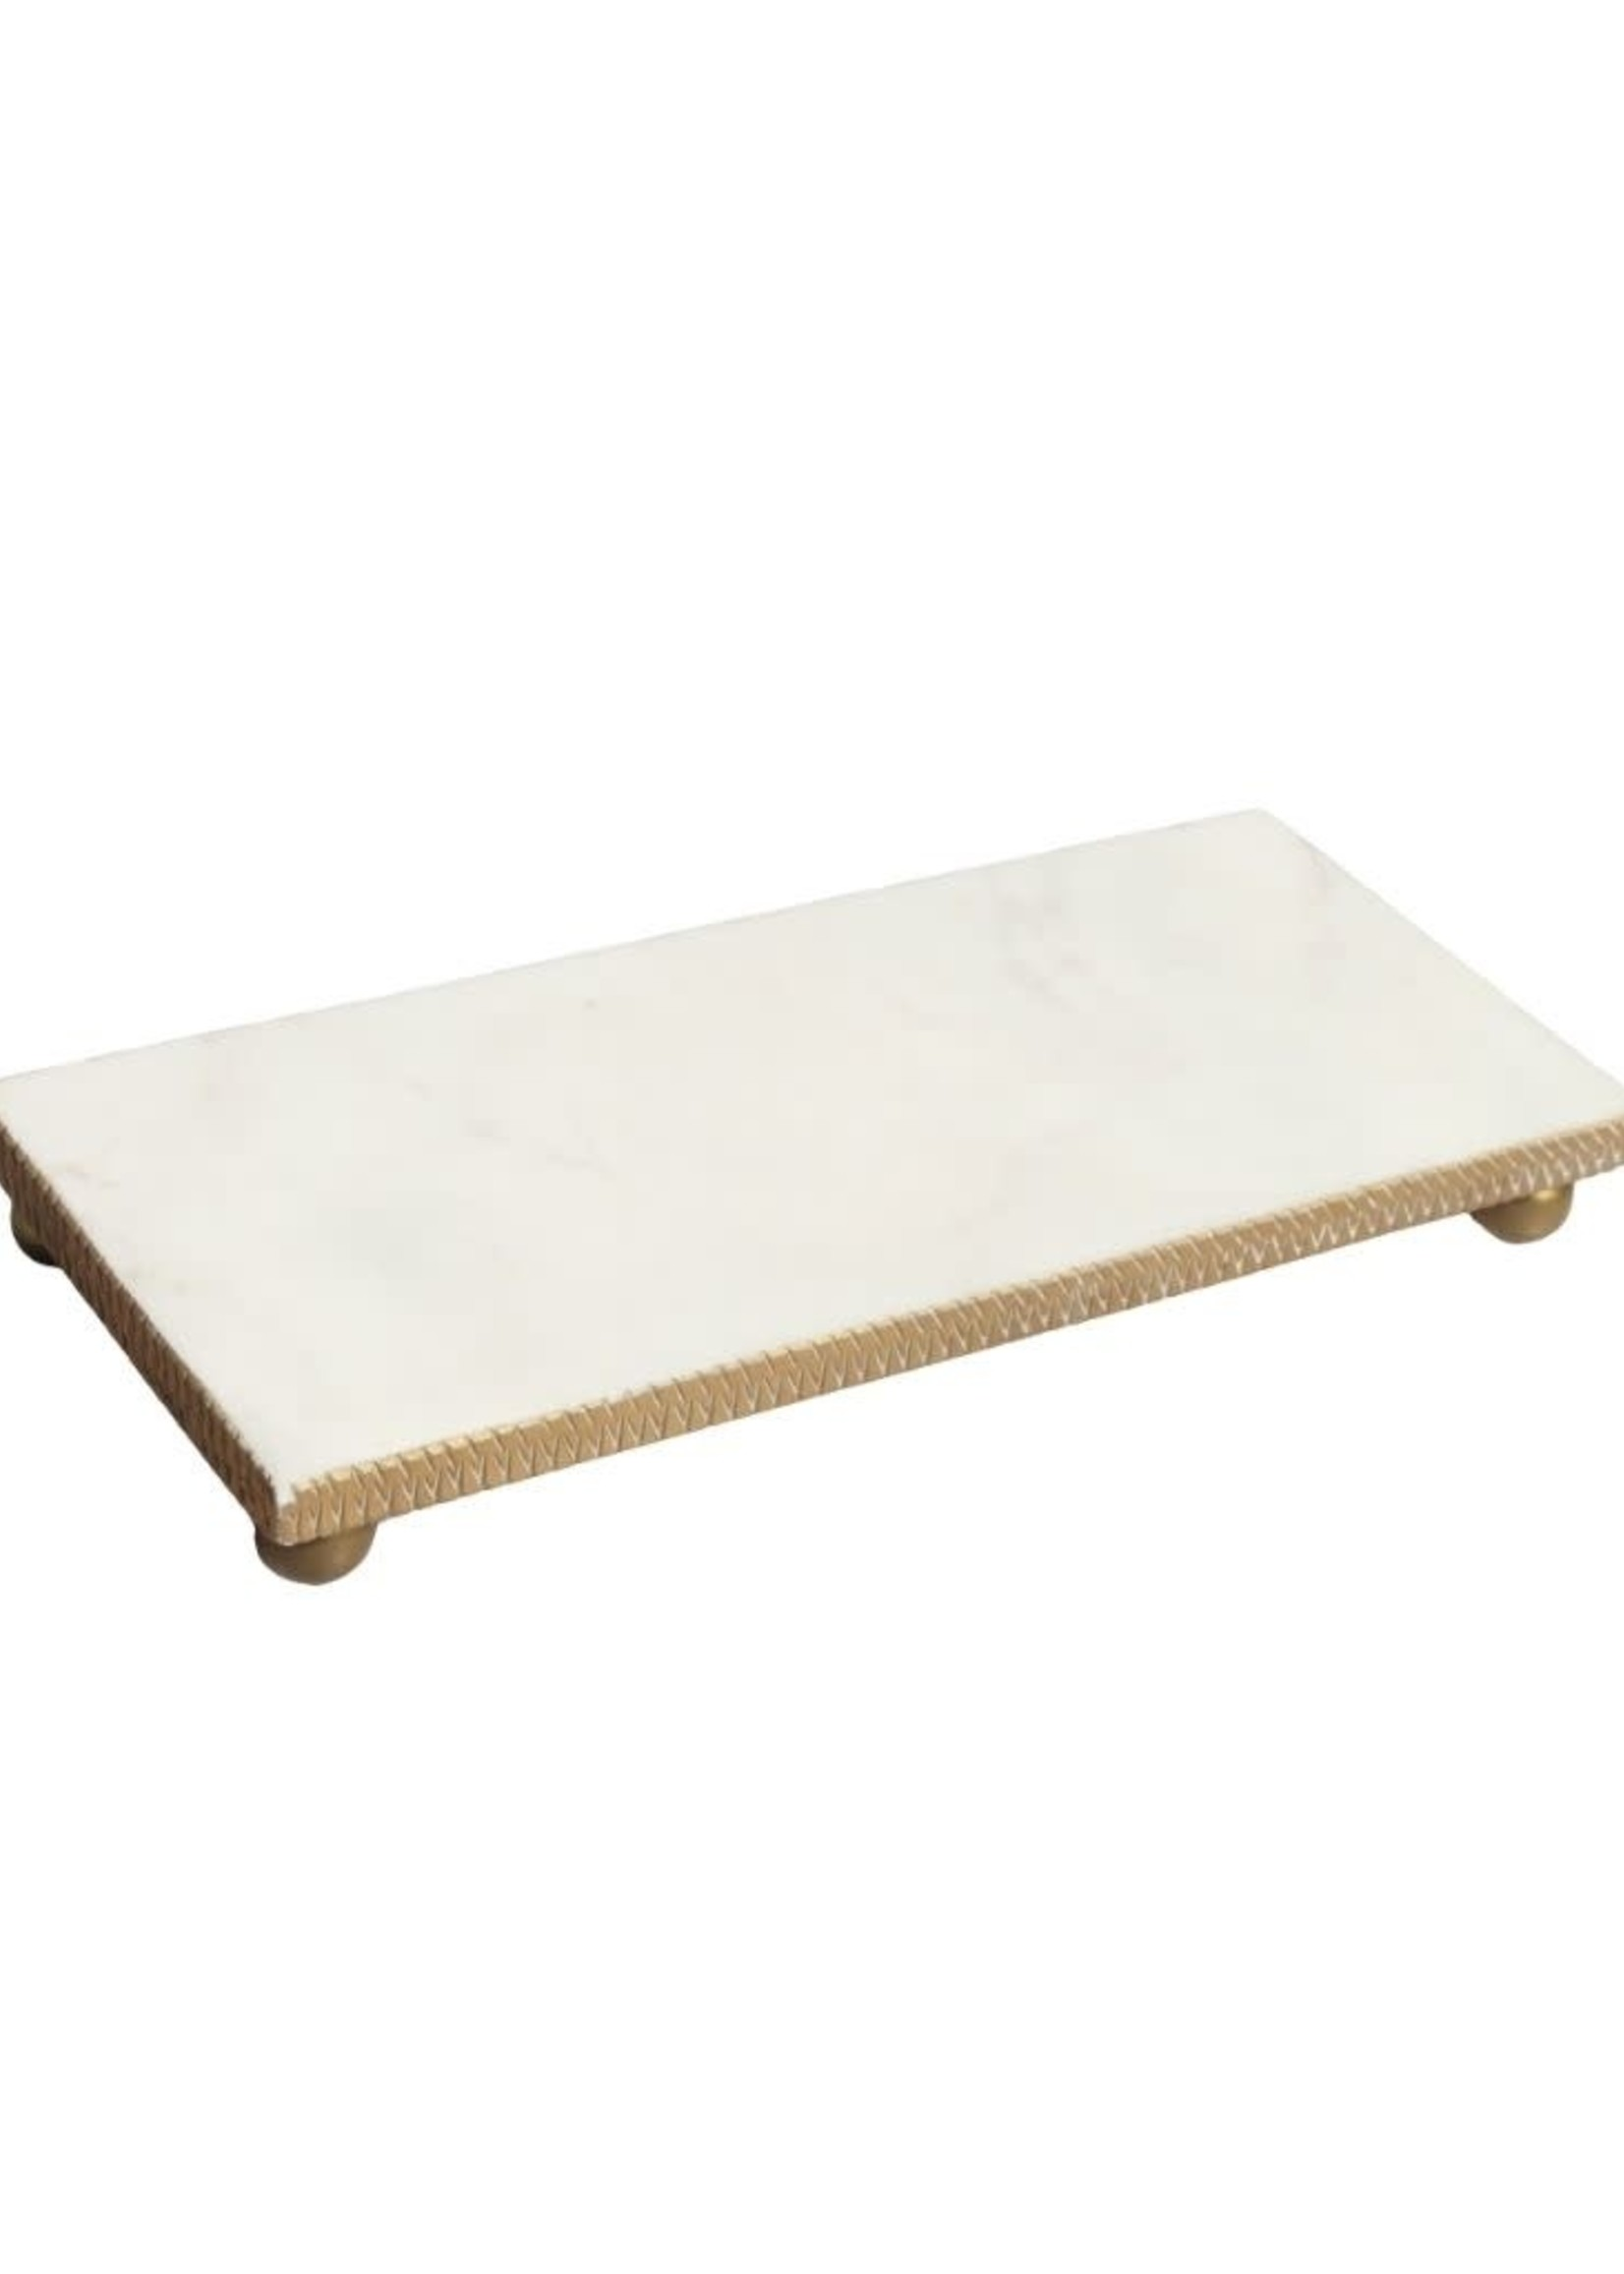 White Marble Oblong Tray w Gold Beaded Edge - Small